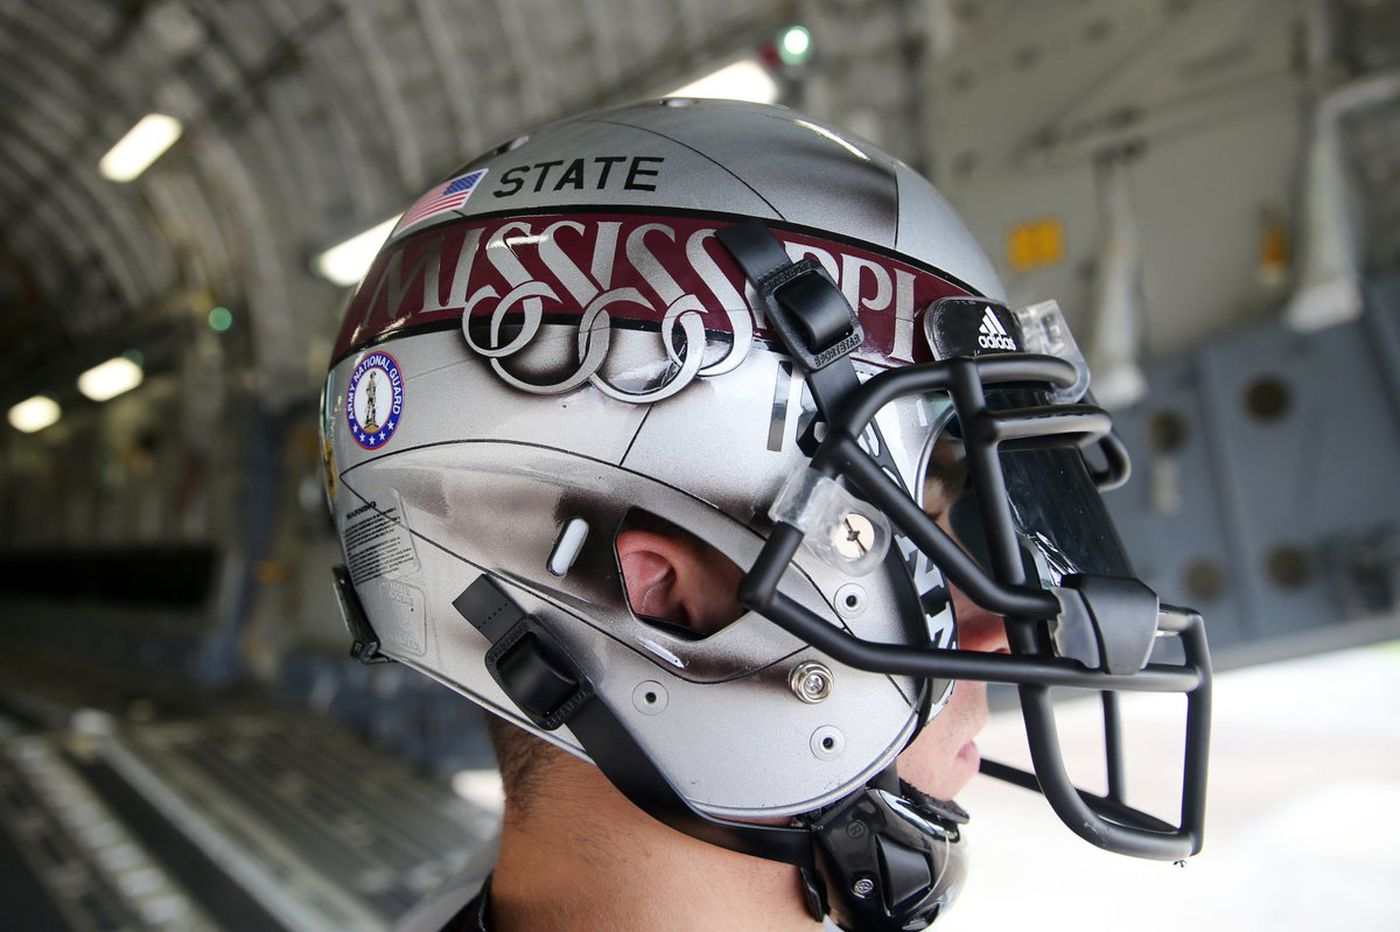 The special helmet as part of Mississippi State's 'Statesman' uniforms Source: Mississippi State Athletics